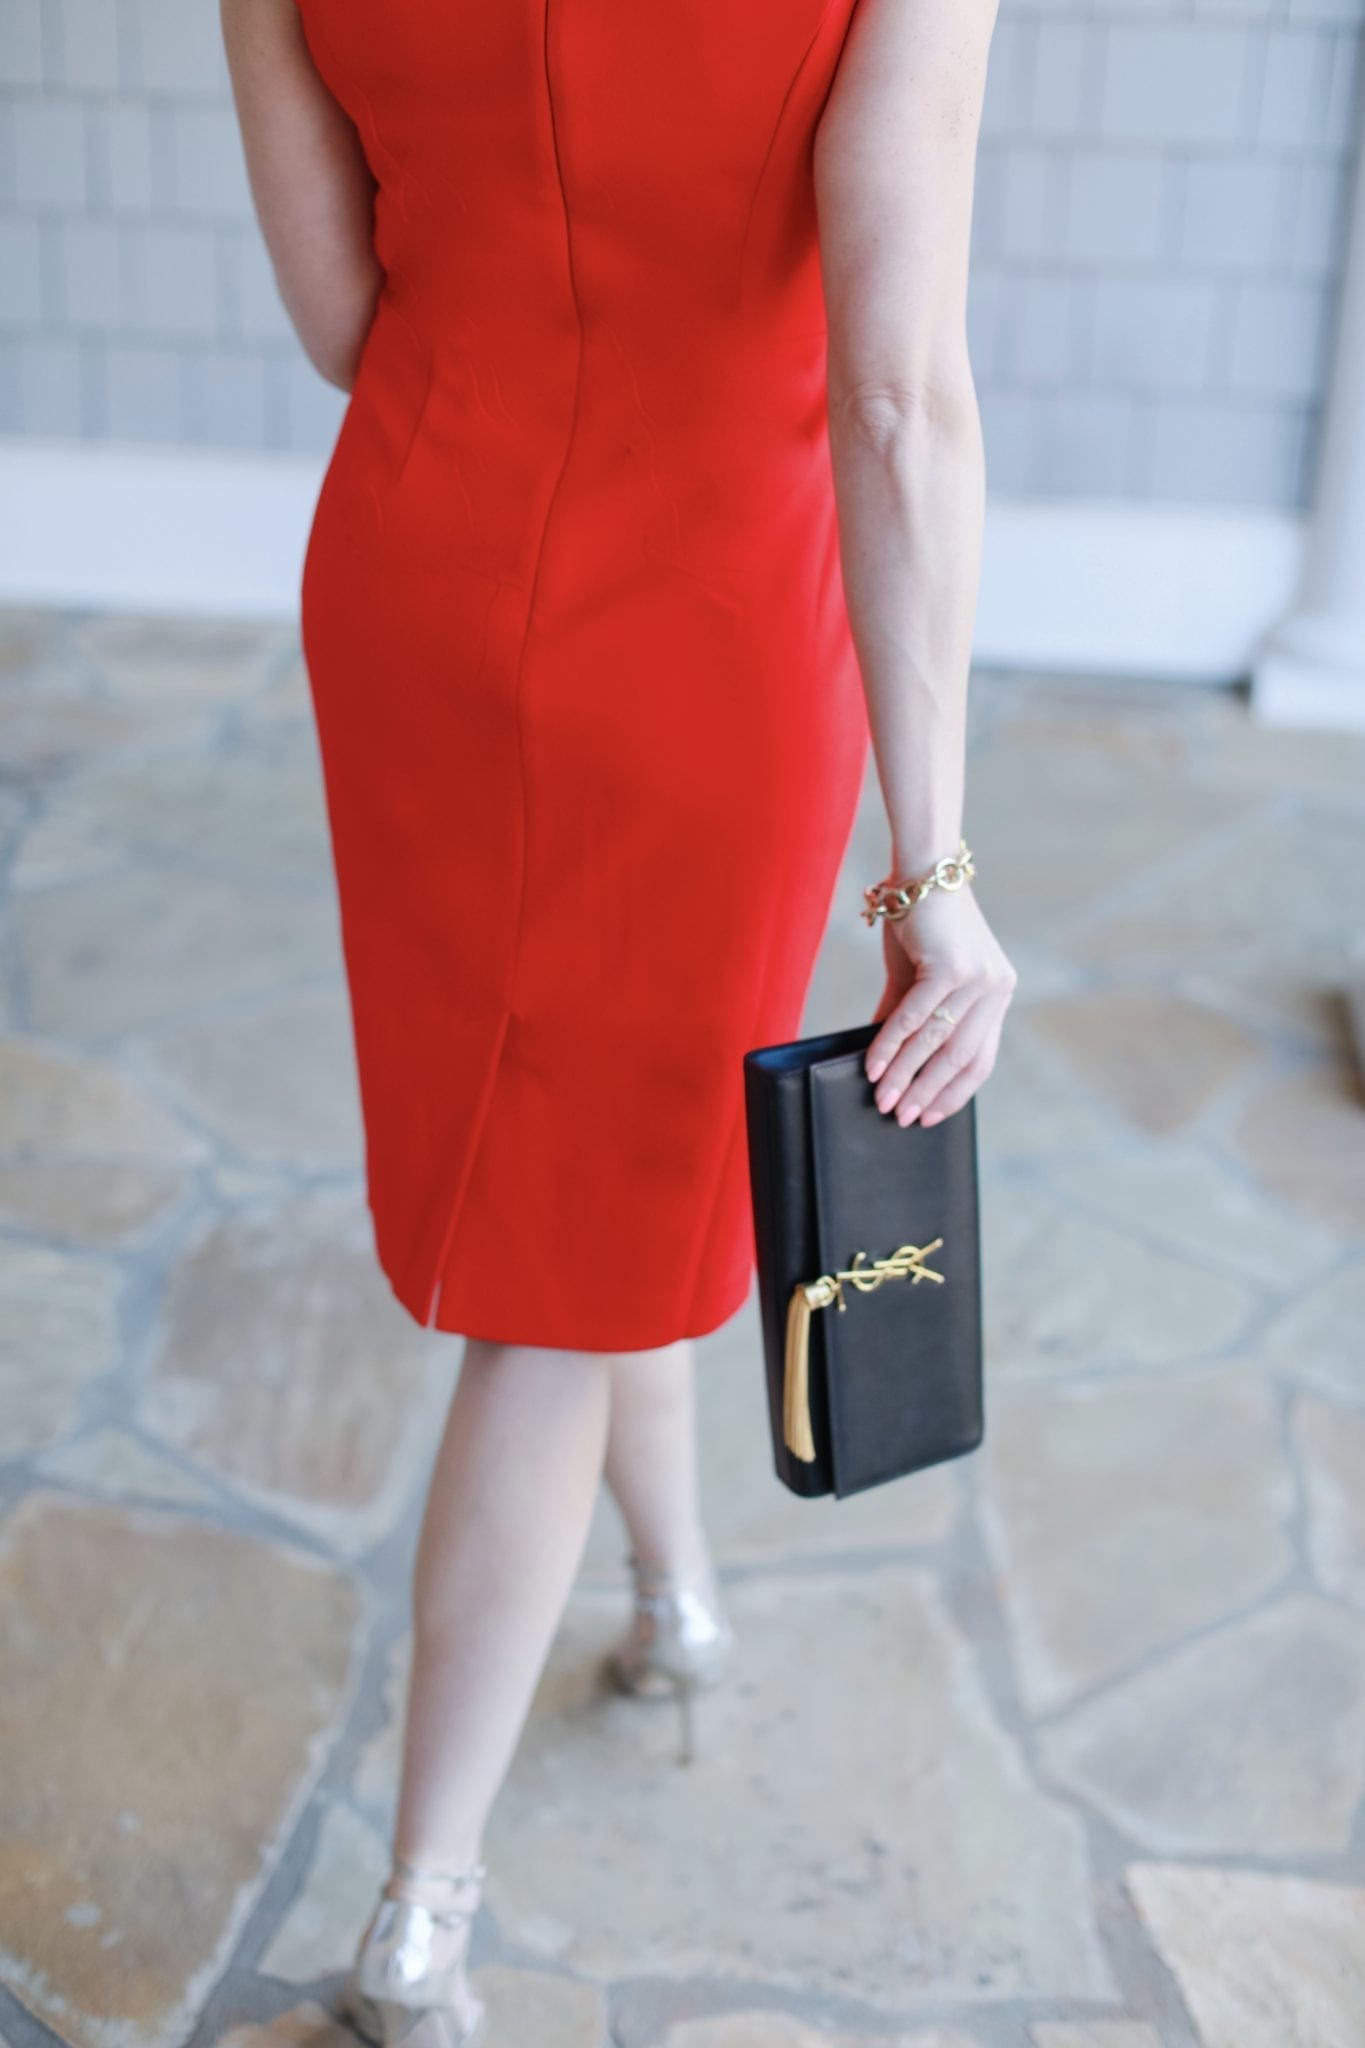 Dresses for cocktail parties. Red dress and black YSL clutch.